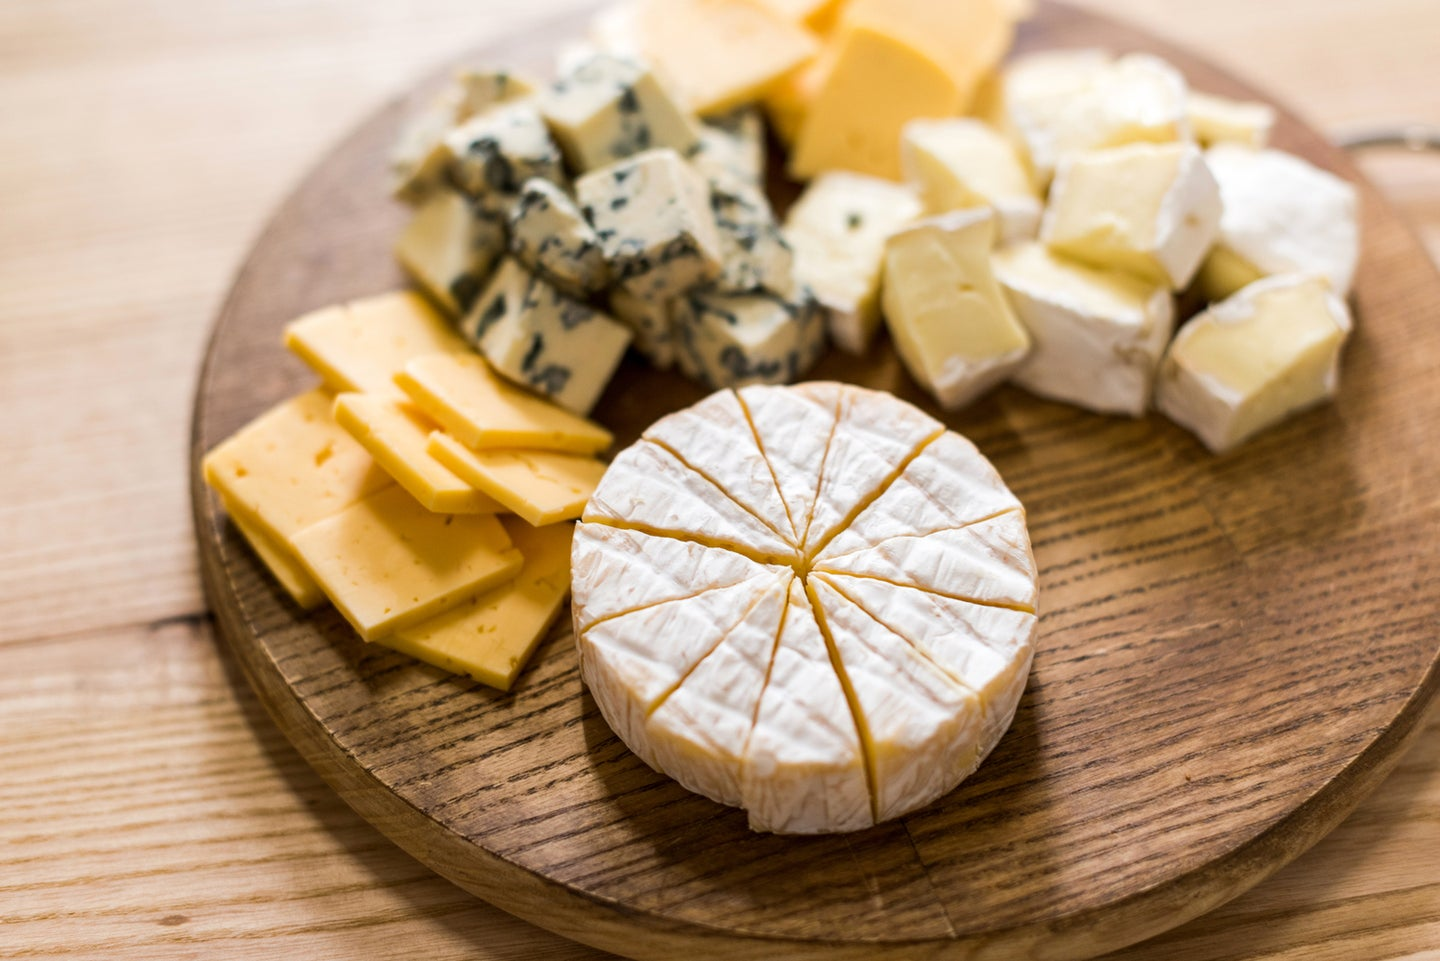 a cheese board with different cheeses of different shapes